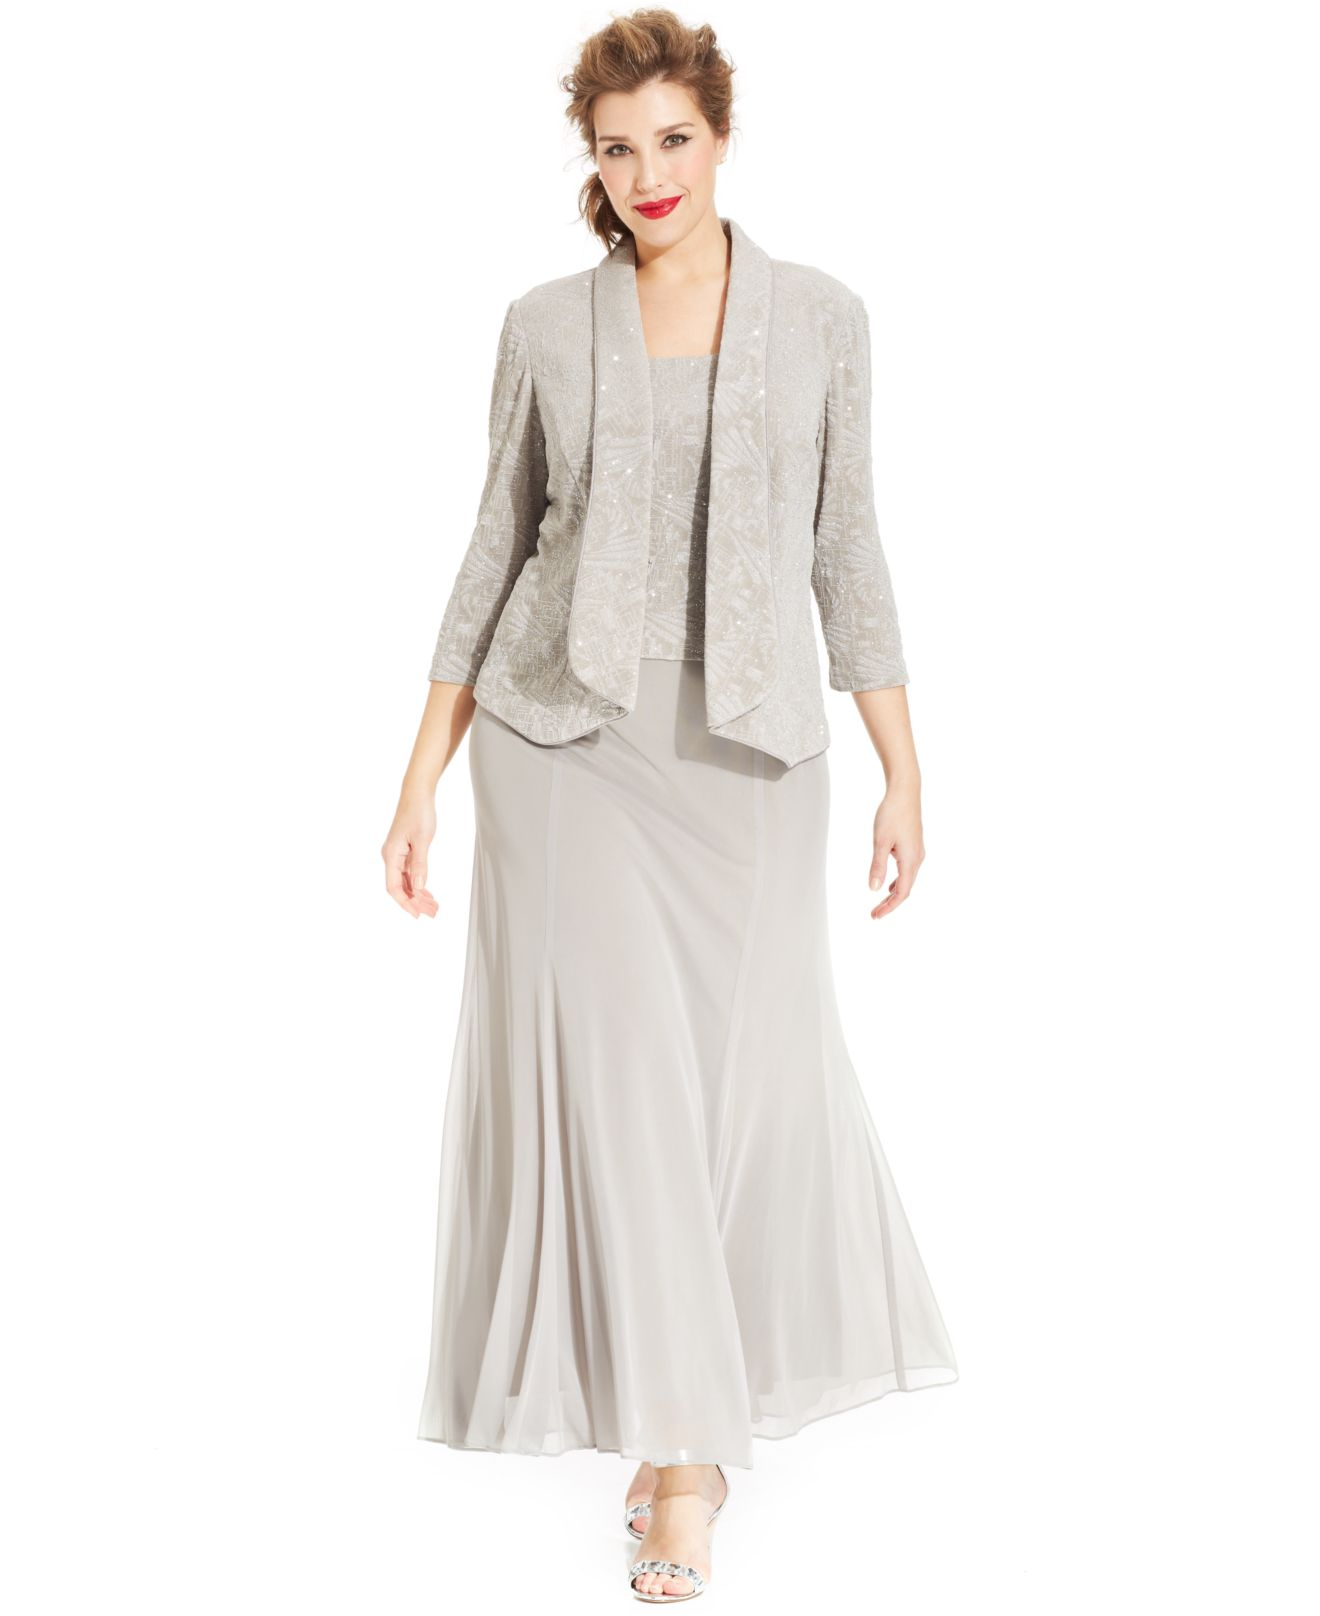 7835b31d70c Alex Evenings Plus Size Glitter Jacquard Dress And Jacket in Gray - Lyst